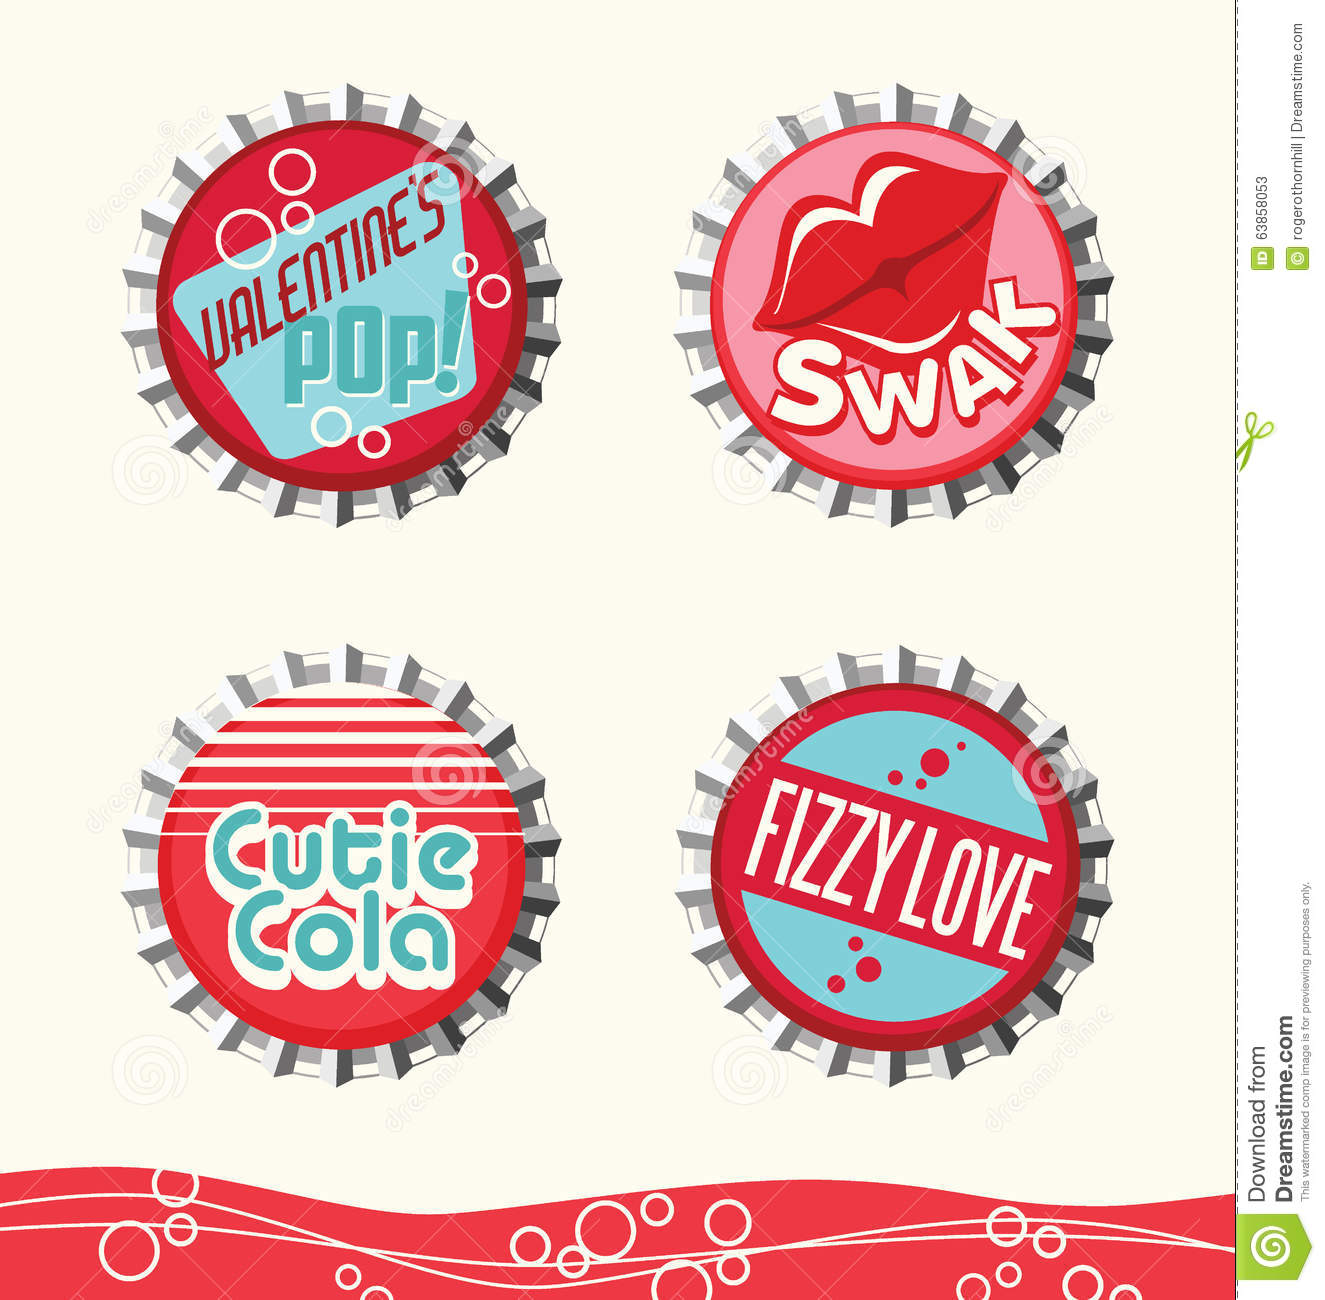 Retro Valentine Designs Stock Vector - Image: 63858053